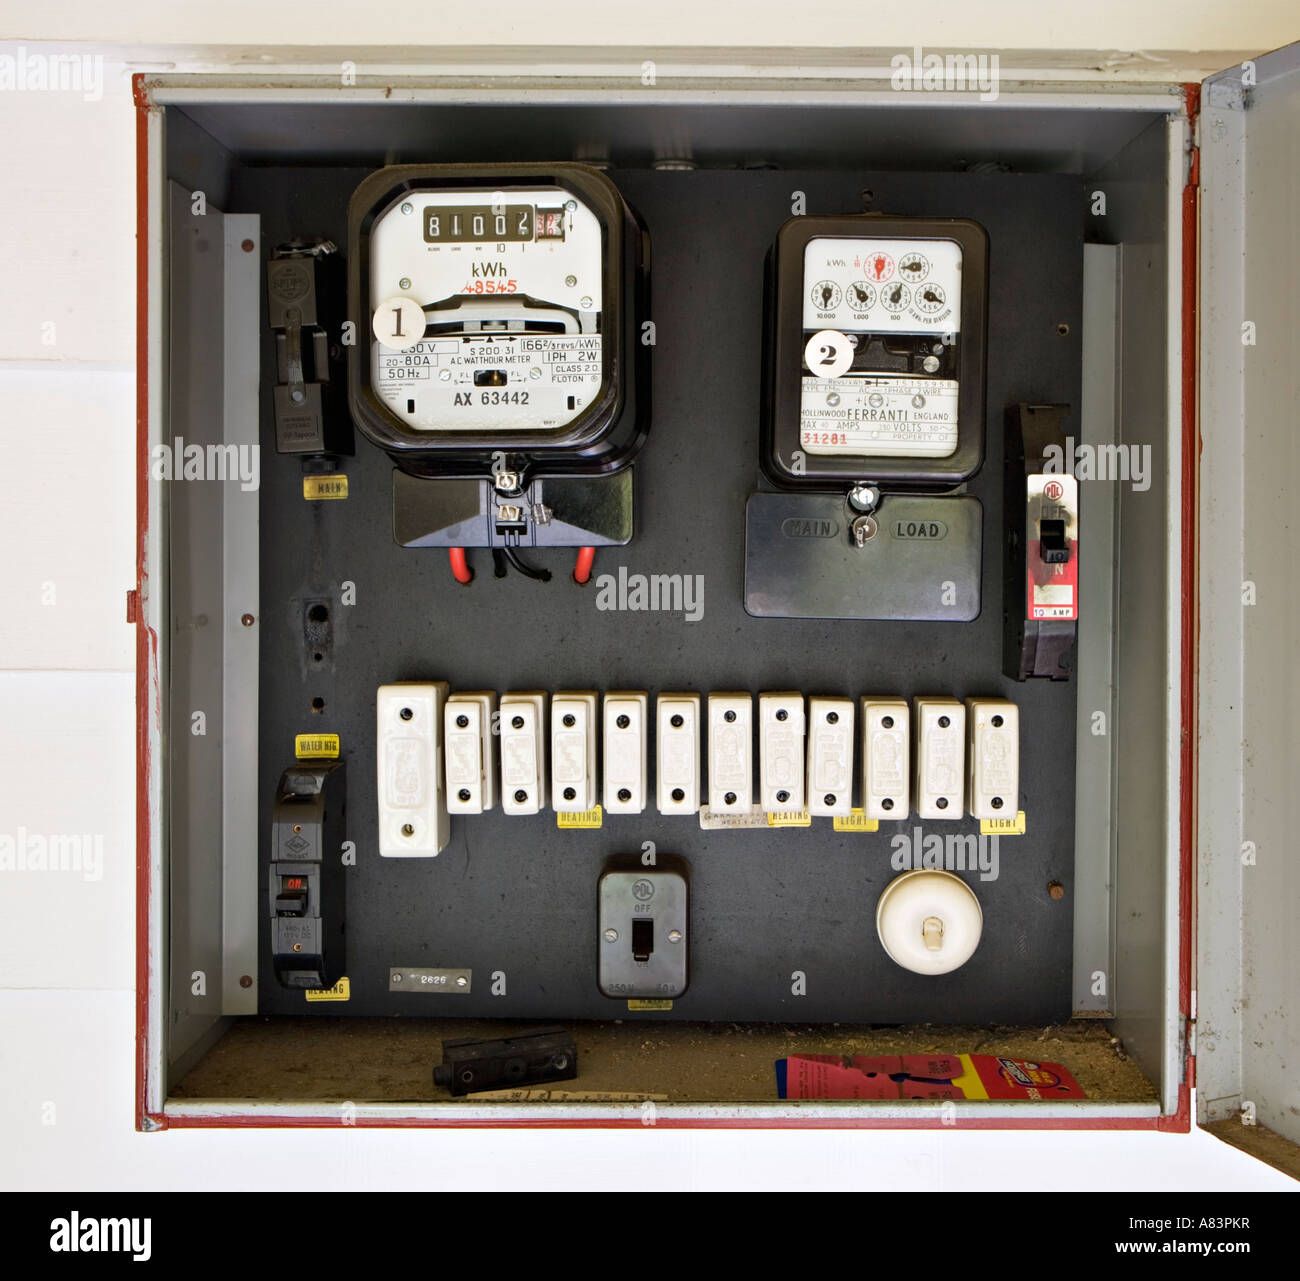 hight resolution of fuse box stock photos fuse box stock images alamy change fuse fuse box electricity meter